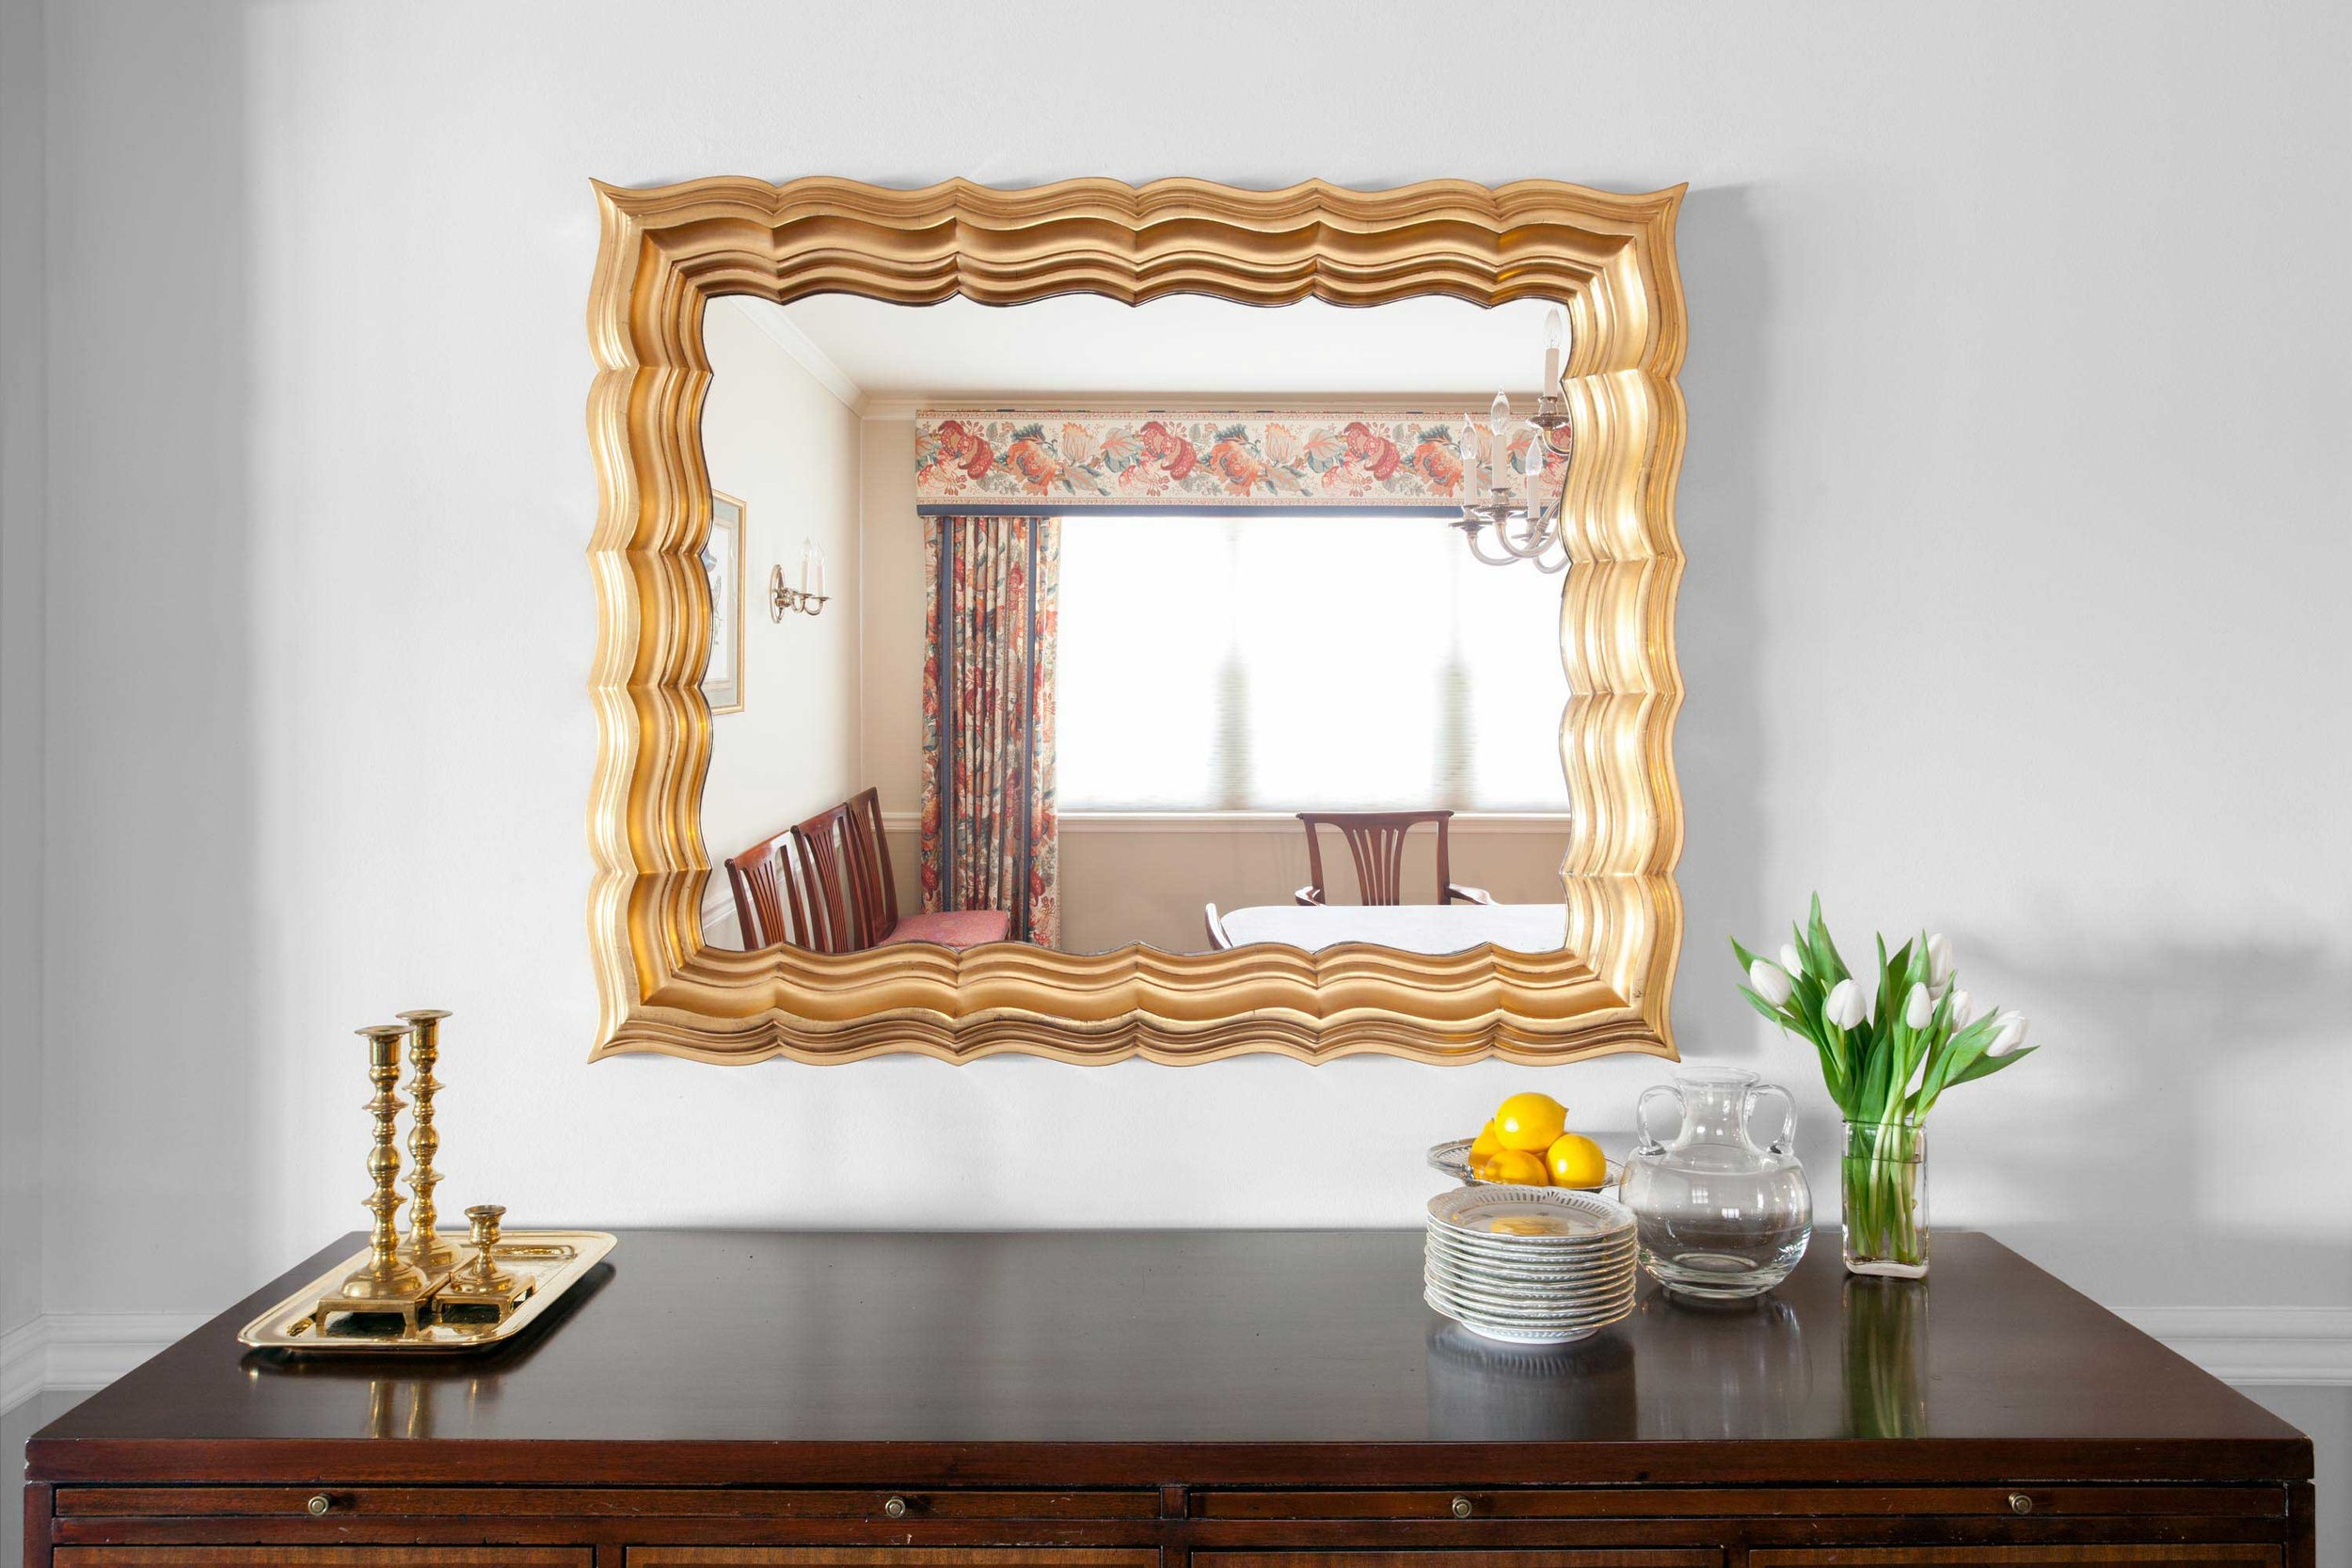 Decorative gold framed TV mirror handing over wooden console table